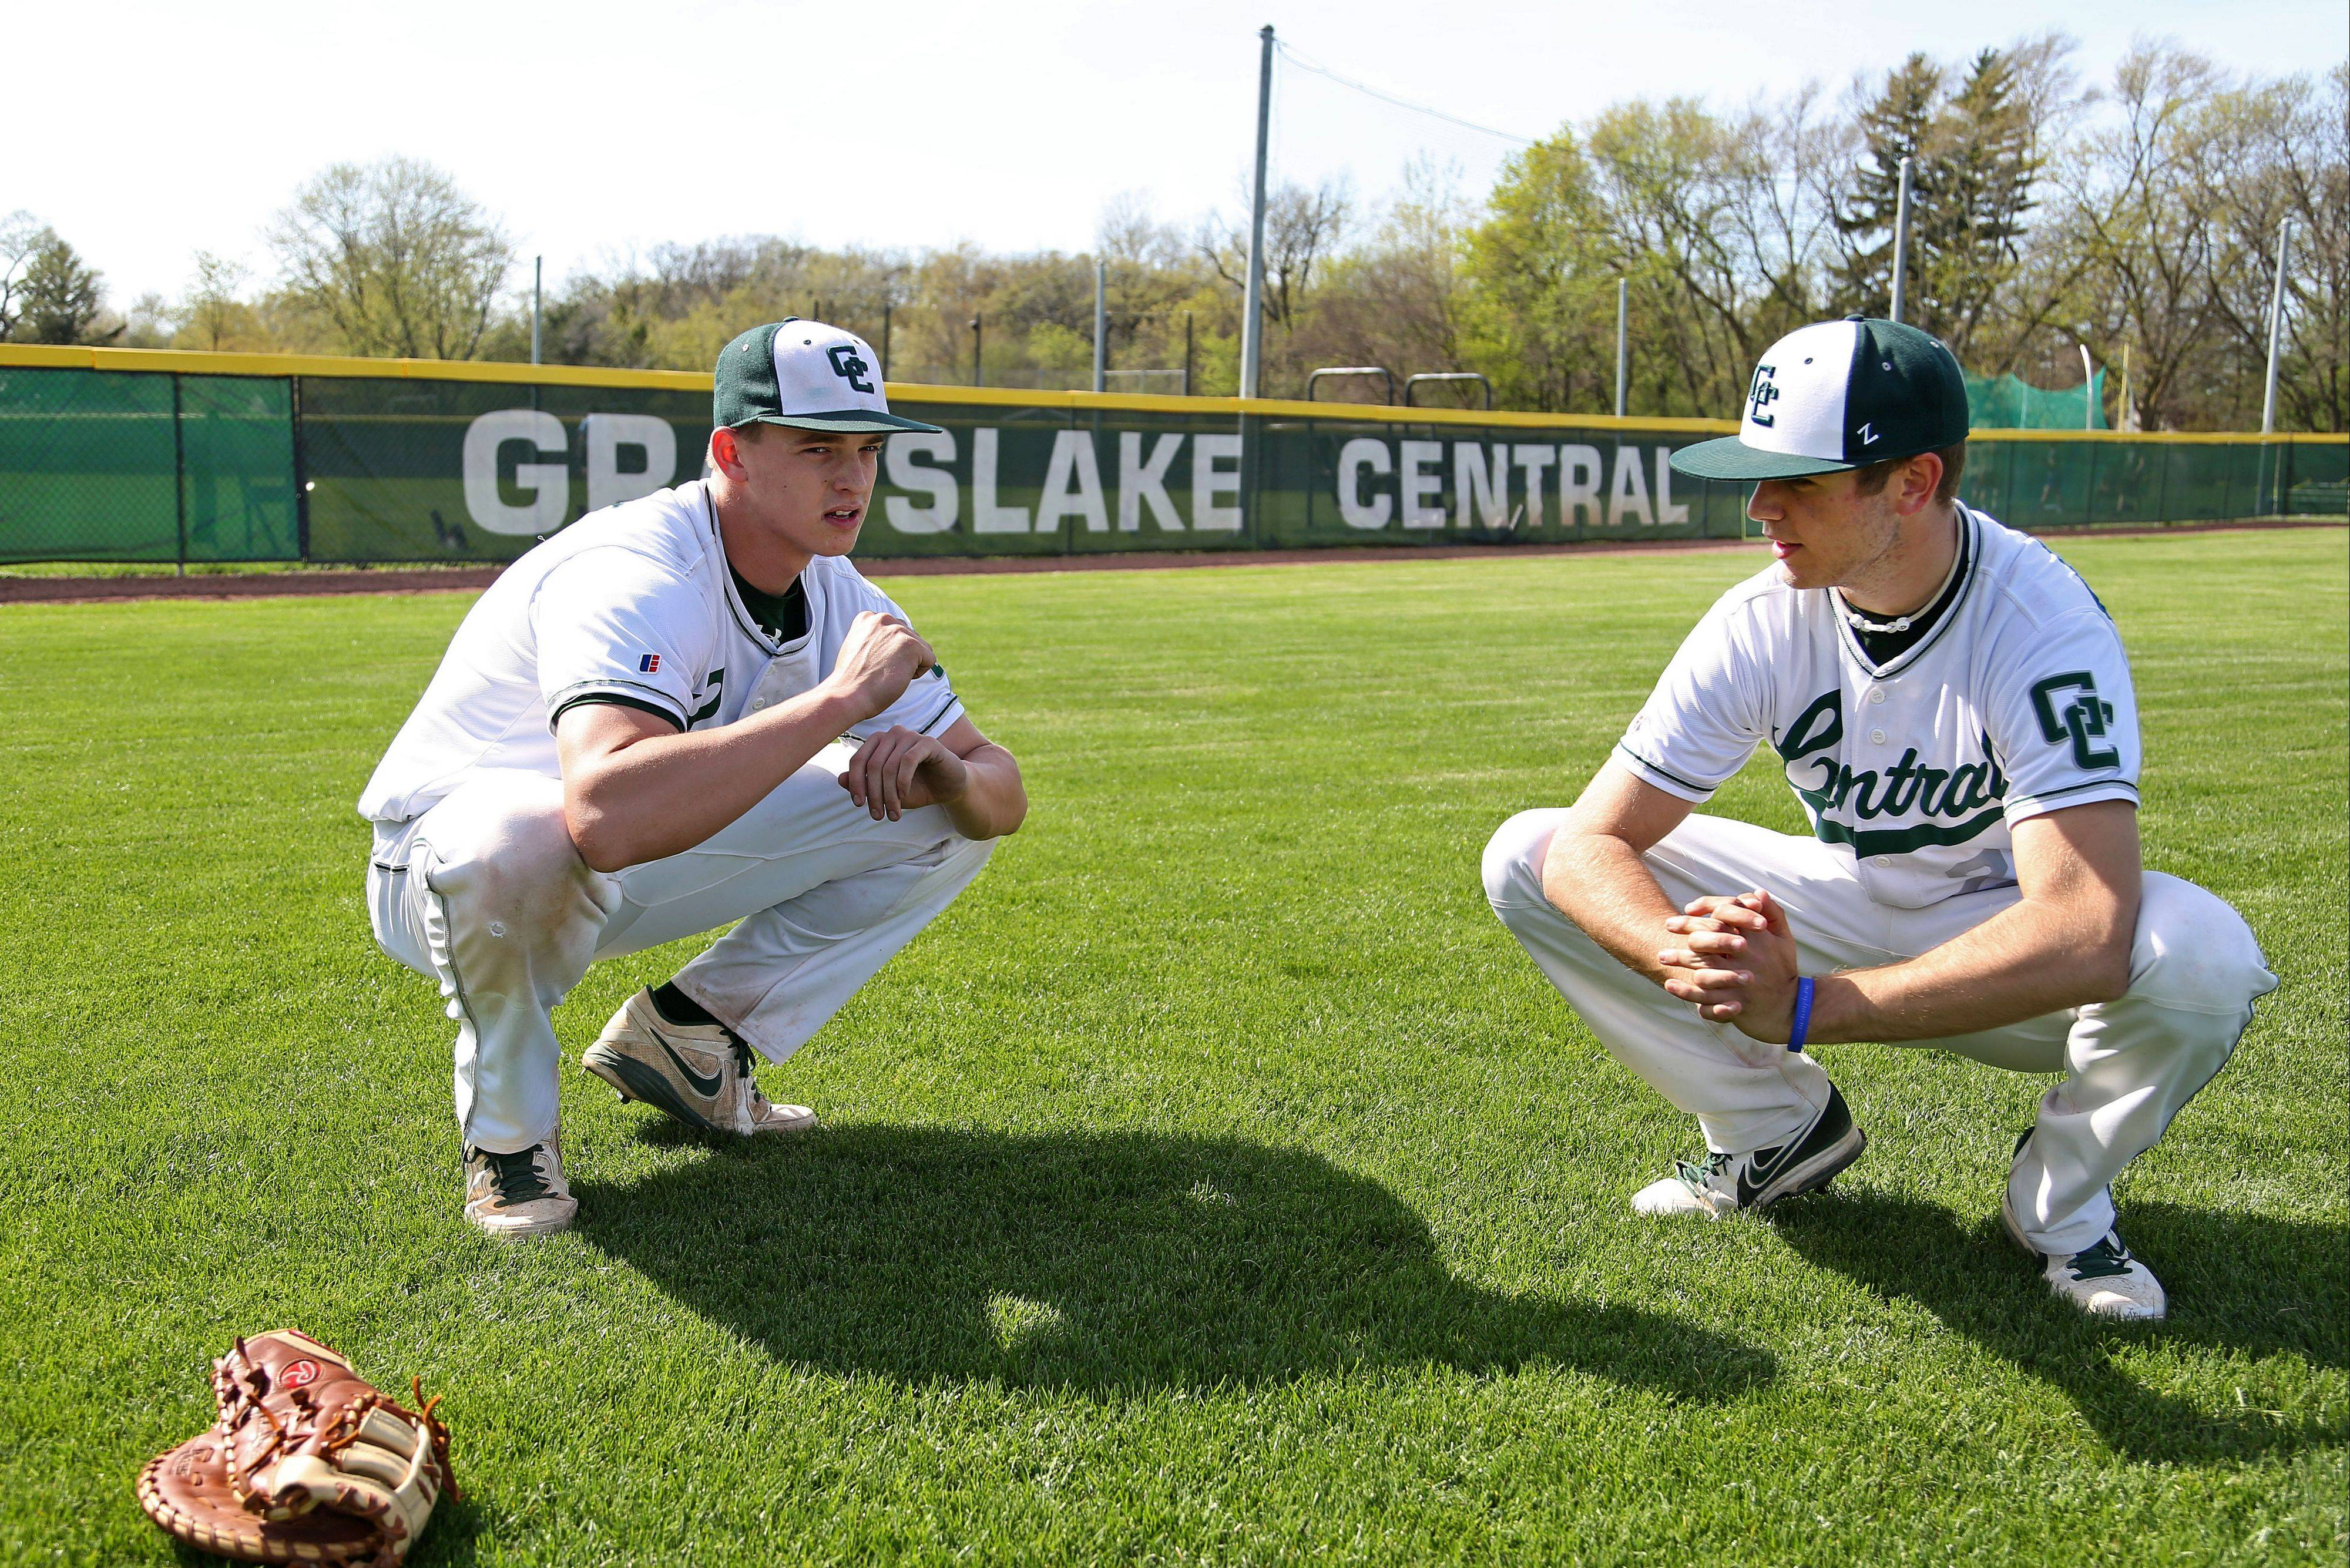 Grayslake Central baseball players Kyle Clark, left, and Christian Frusolone stretch before their game Tuesday. They took yoga in the off-season, and it�s helped their play this year.